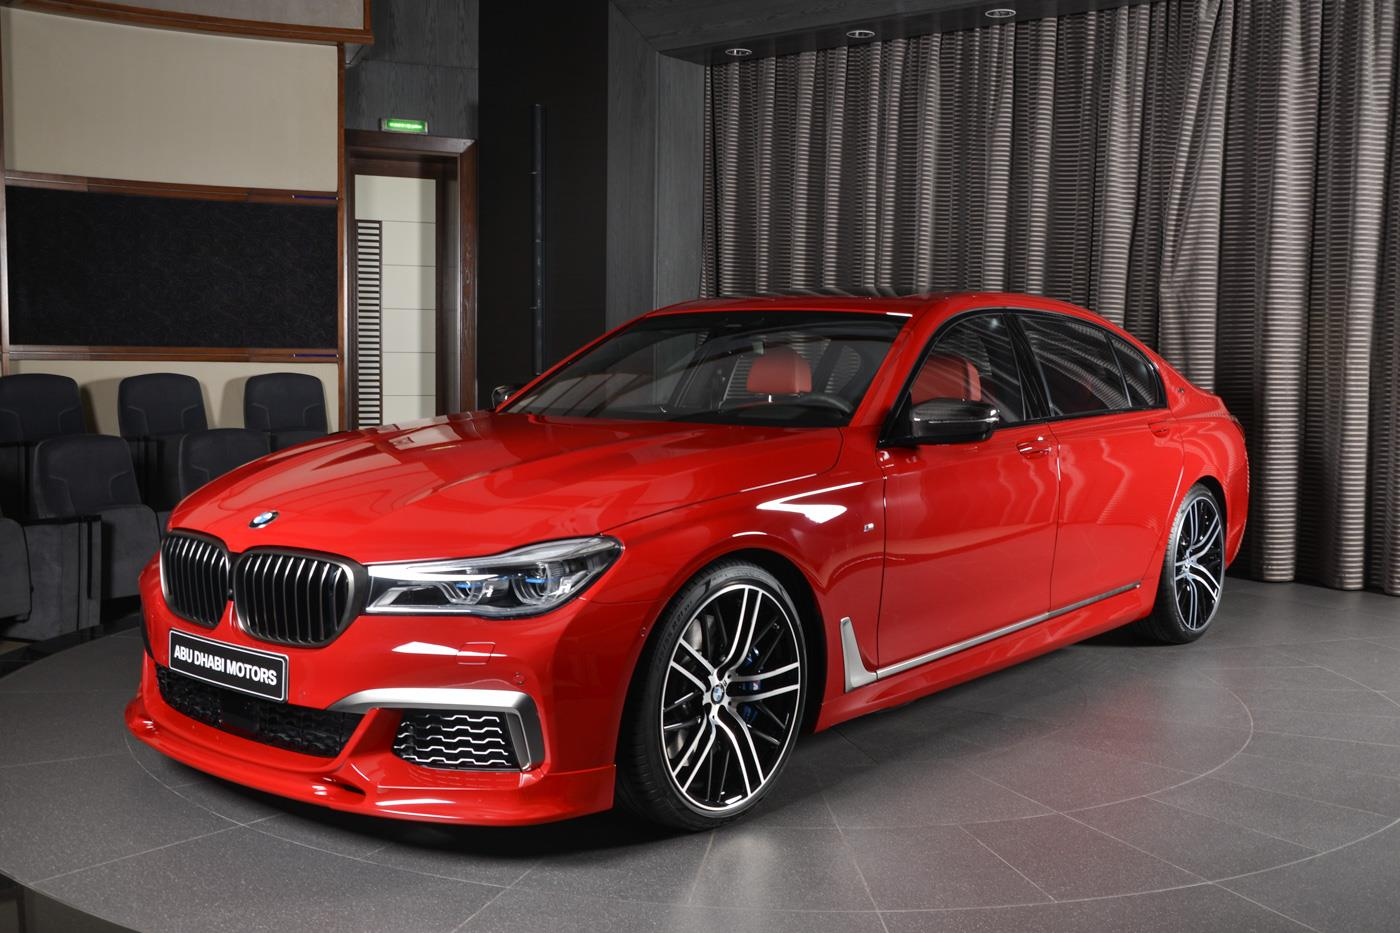 Imola Red Bmw M760li Xdrive With 3d Design Kit Looks The